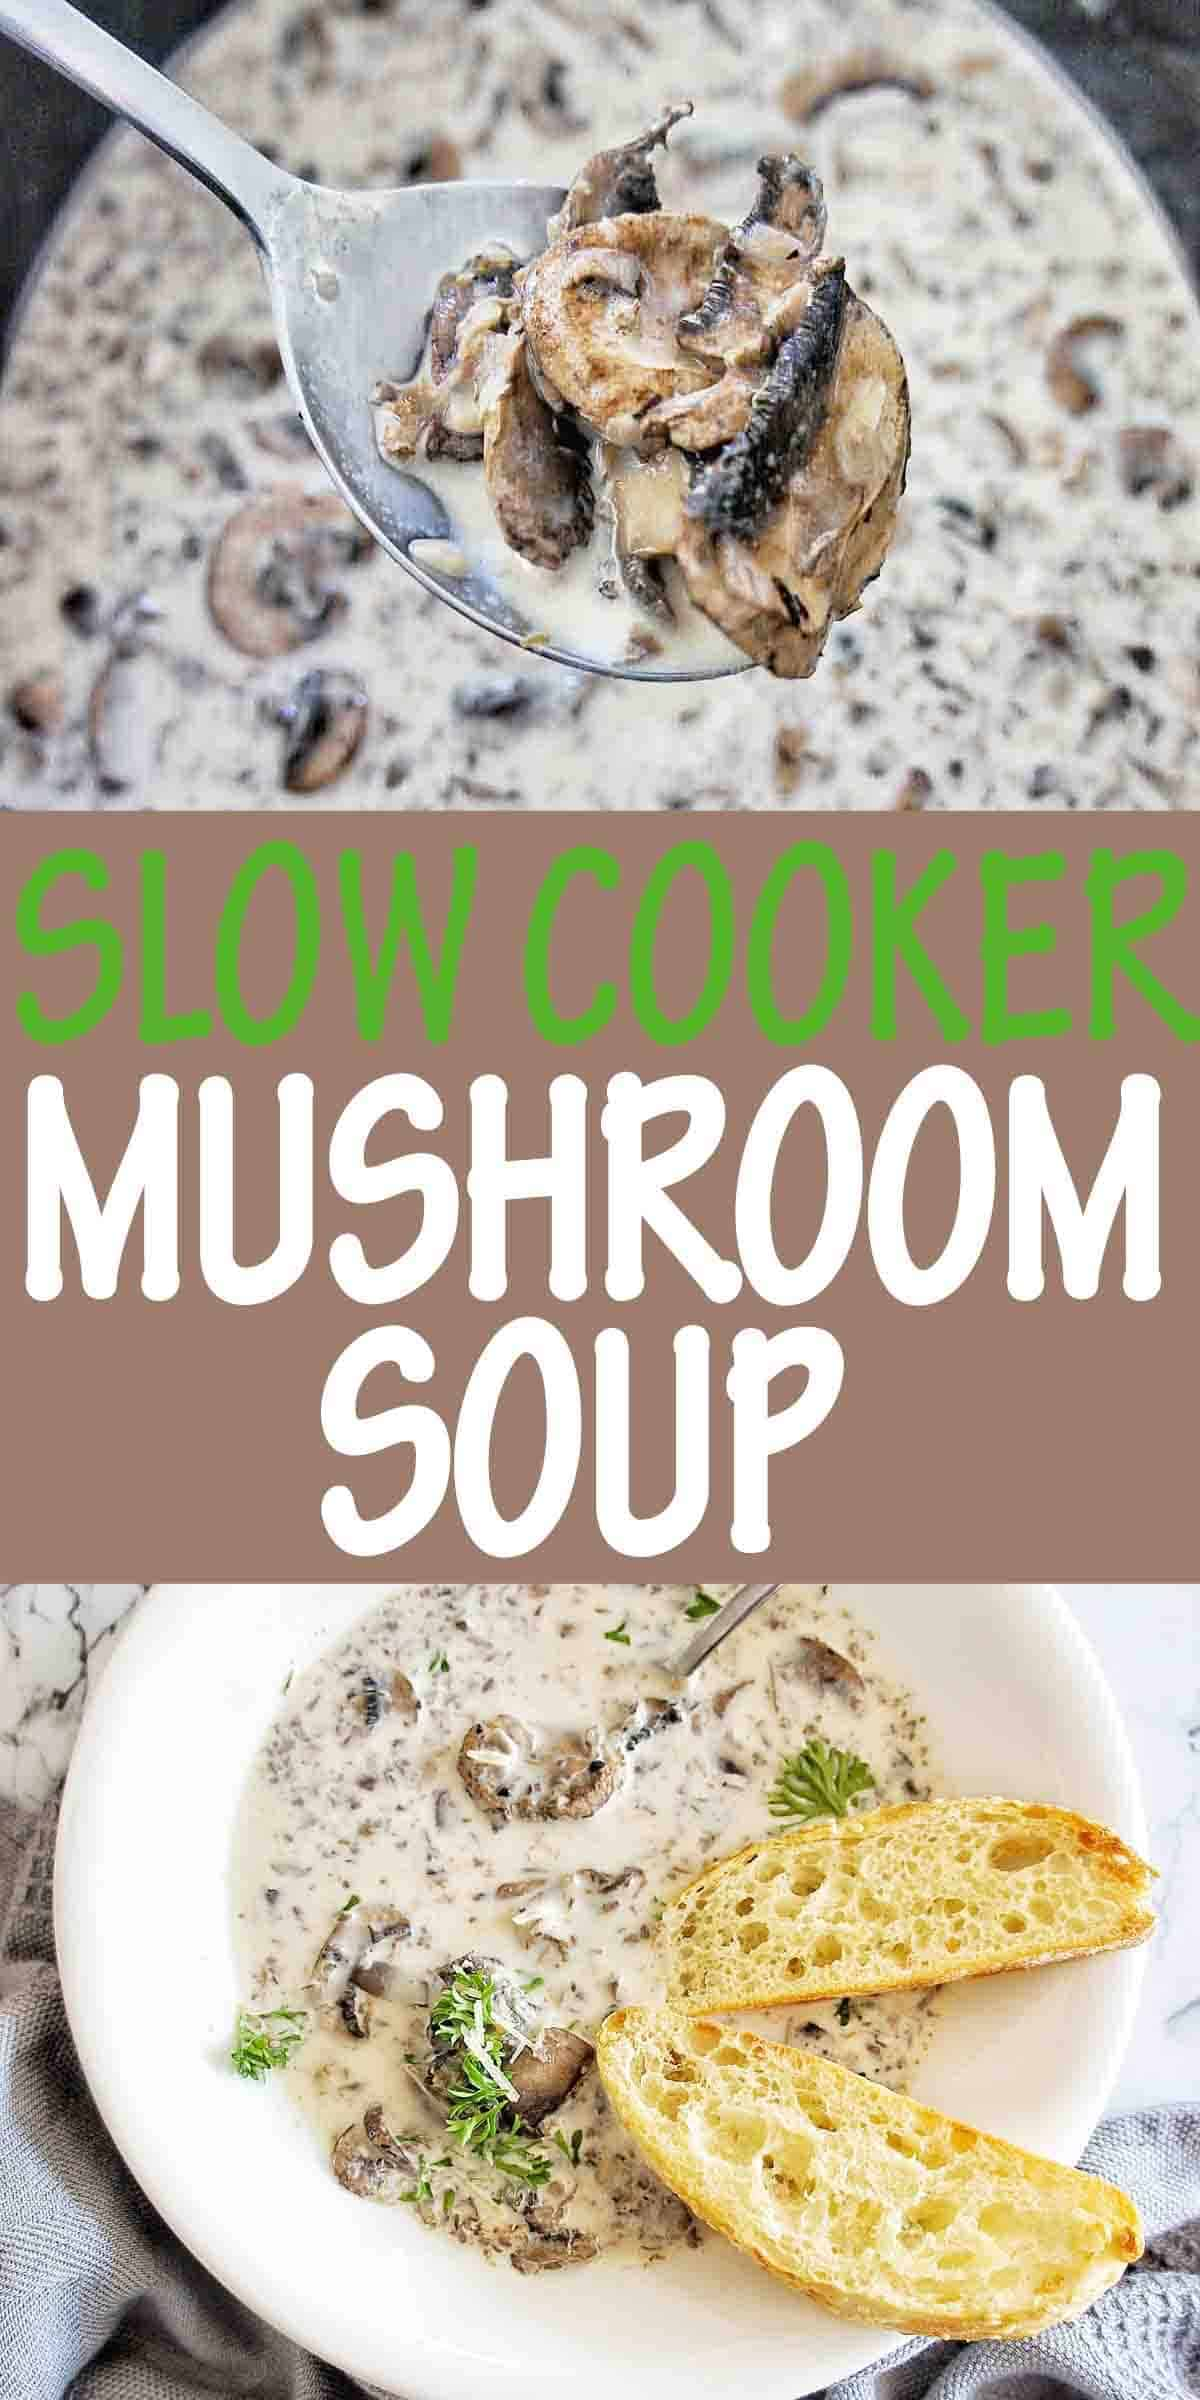 Slow Cooker Mushroom soup with text over lay